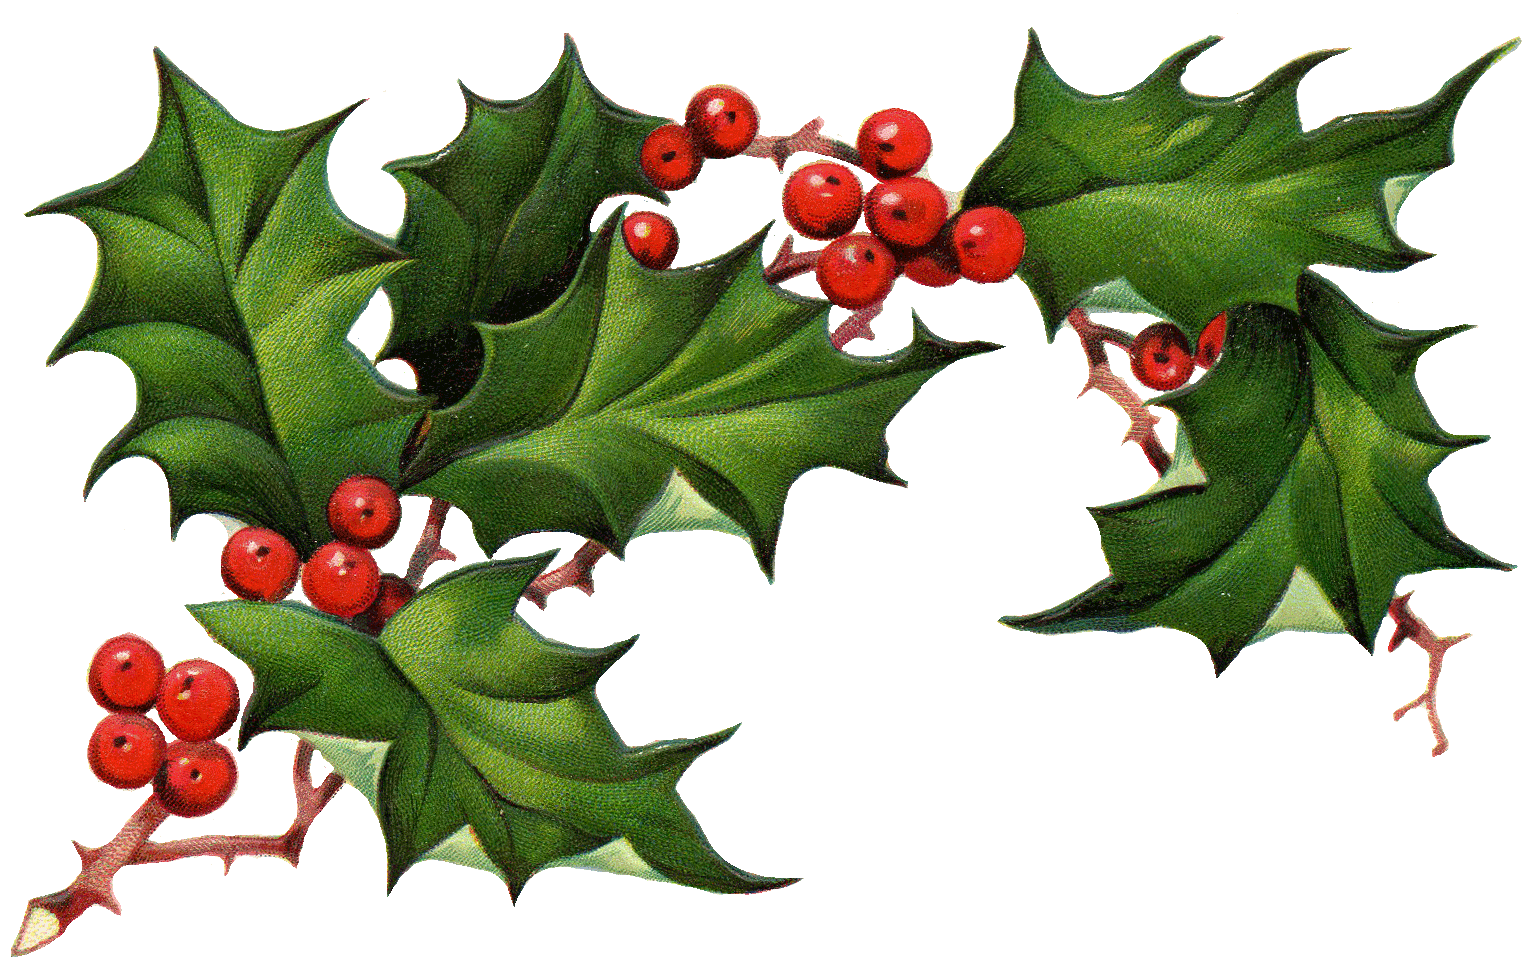 Christmas clipart holly picture library download 28+ Collection of Christmas Holly Clipart Free | High quality, free ... picture library download